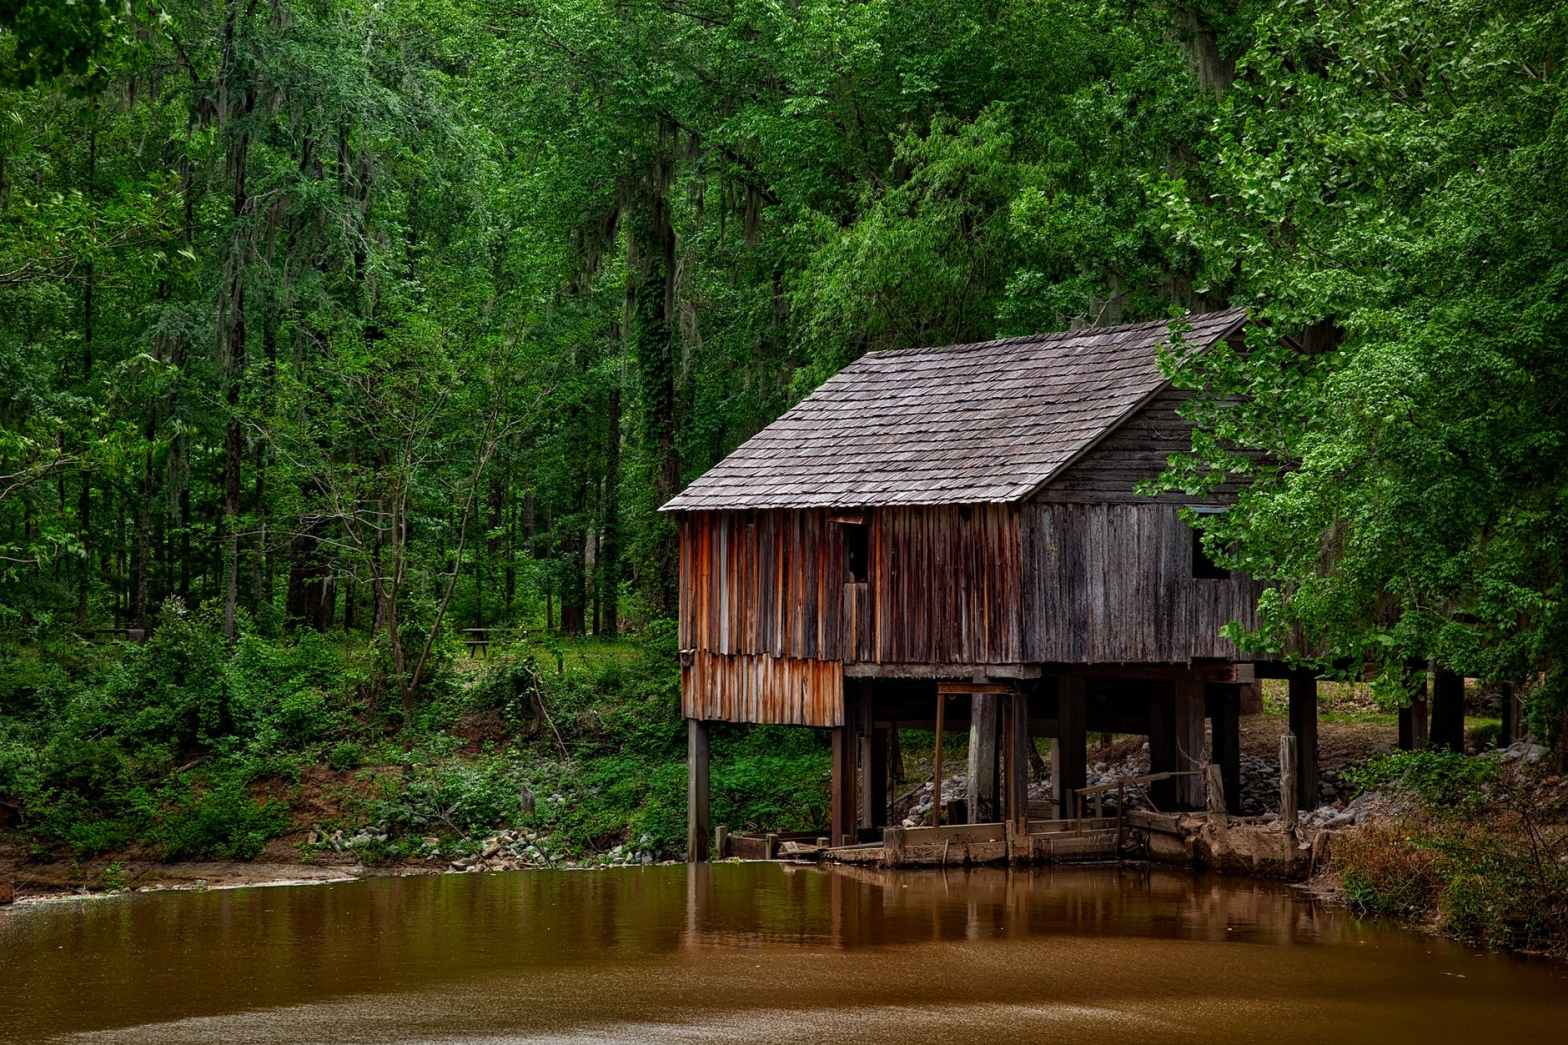 brown wooden shed surrounded by trees